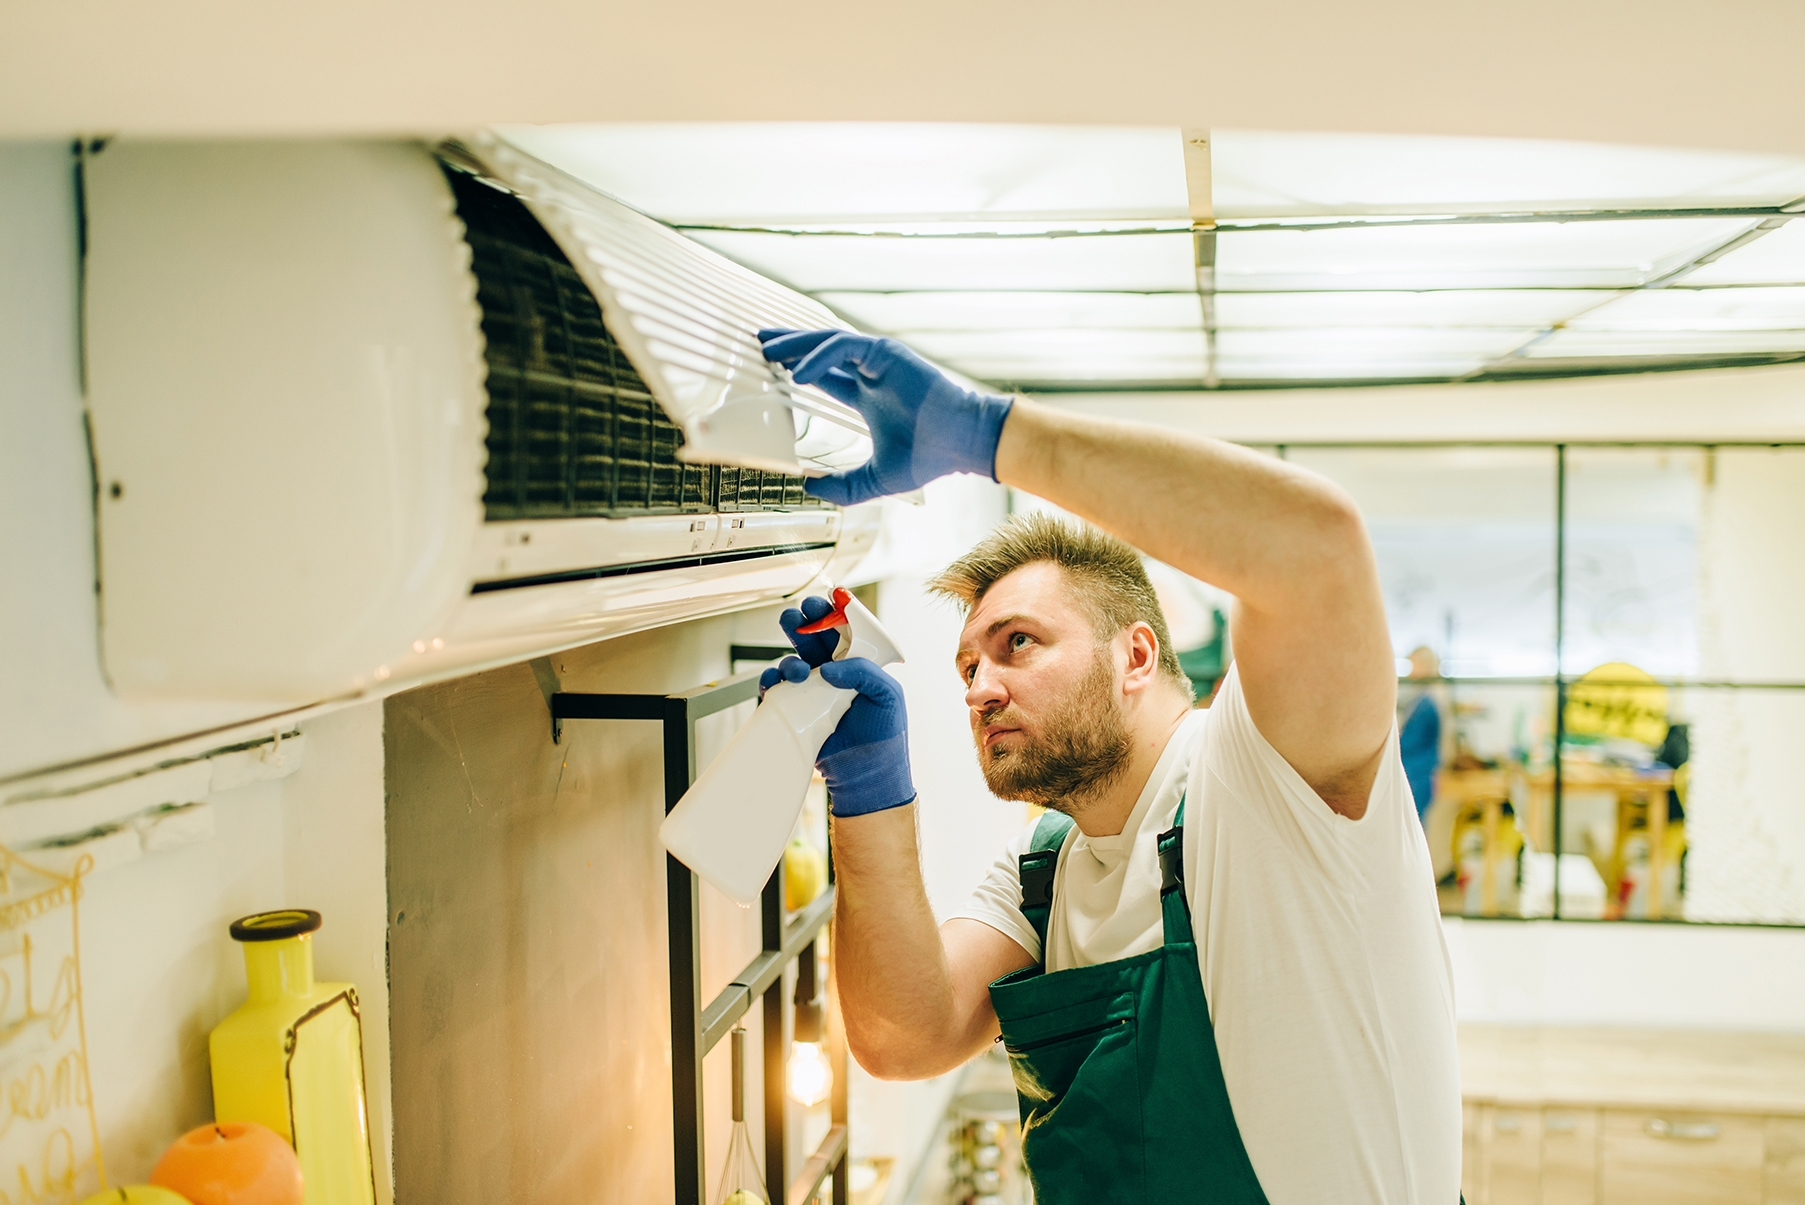 JDs AC Air Conditioning Maintenance Man